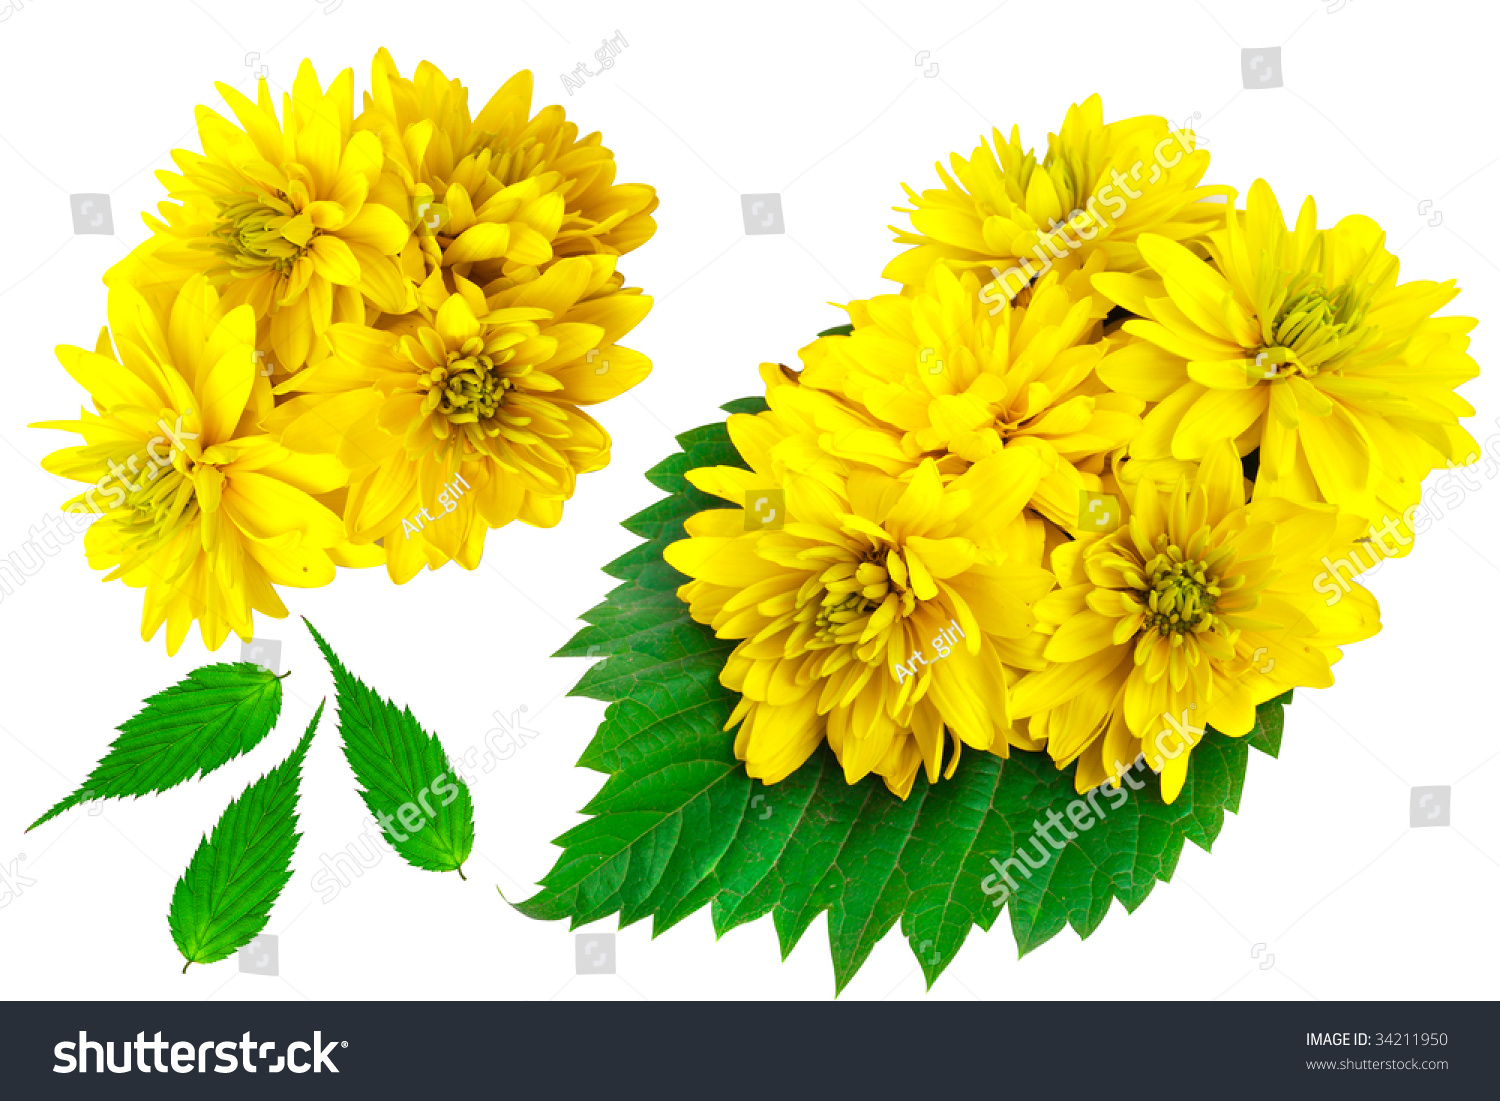 Yellow Color Flowers With Green Leafs Isolated On White Background